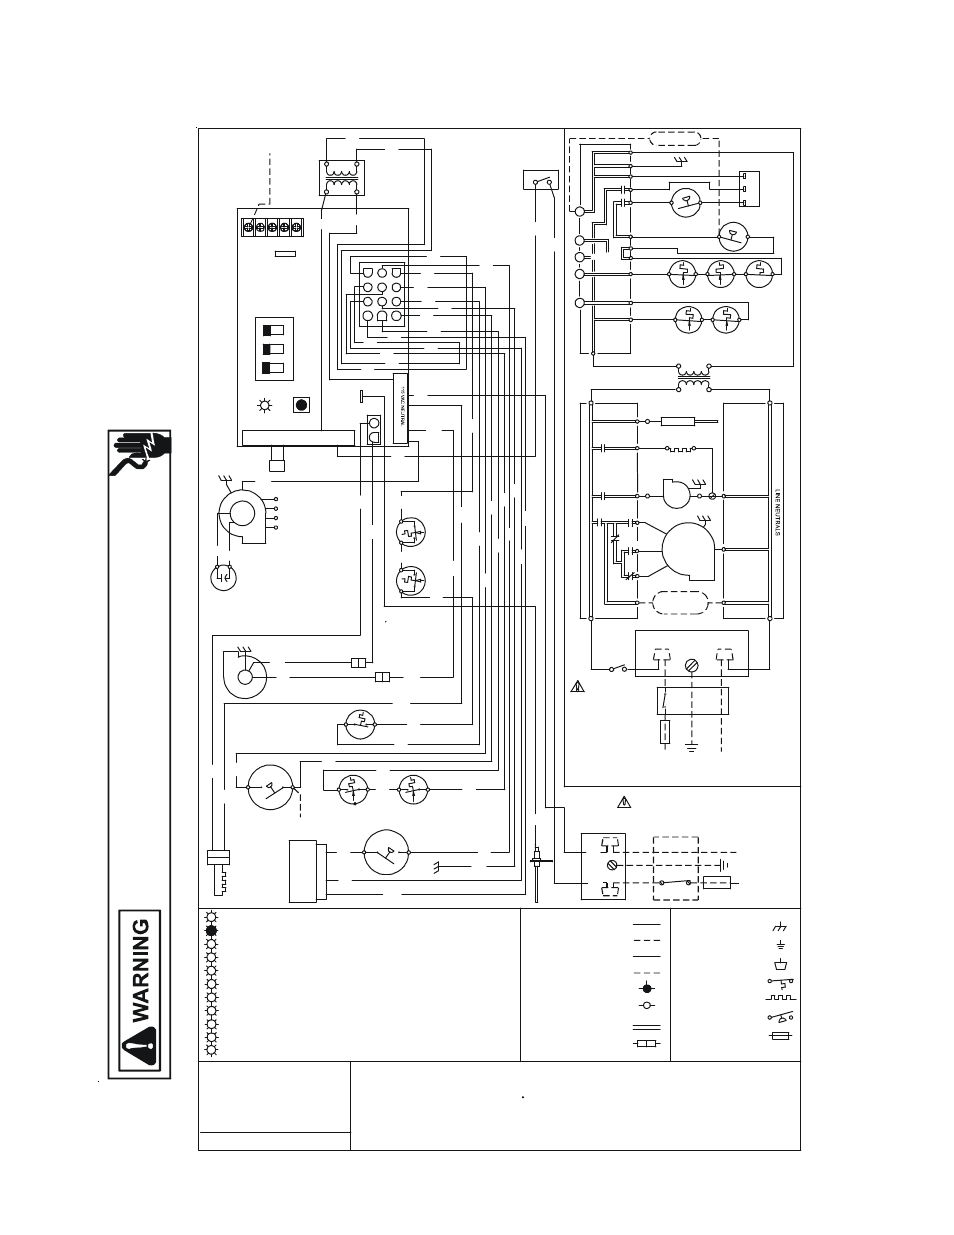 Wiring diagrams | Goodman Mfg GMH95 User Manual | Page 15 / 15 ... on goodman air conditioners, goodman flame sensor, goodman air conditioning diagram, goodman thermostat, goodman parts diagram, goodman hvac diagram, goodman gas pack, goodman heater, goodman diagram fatigue, goodman logo, goodman heat pump board wiring, goodman heat sequencer wire diagram, goodman gas furnace diagram, goodman schematics, goodman condensing unit, goodman ac diagram,